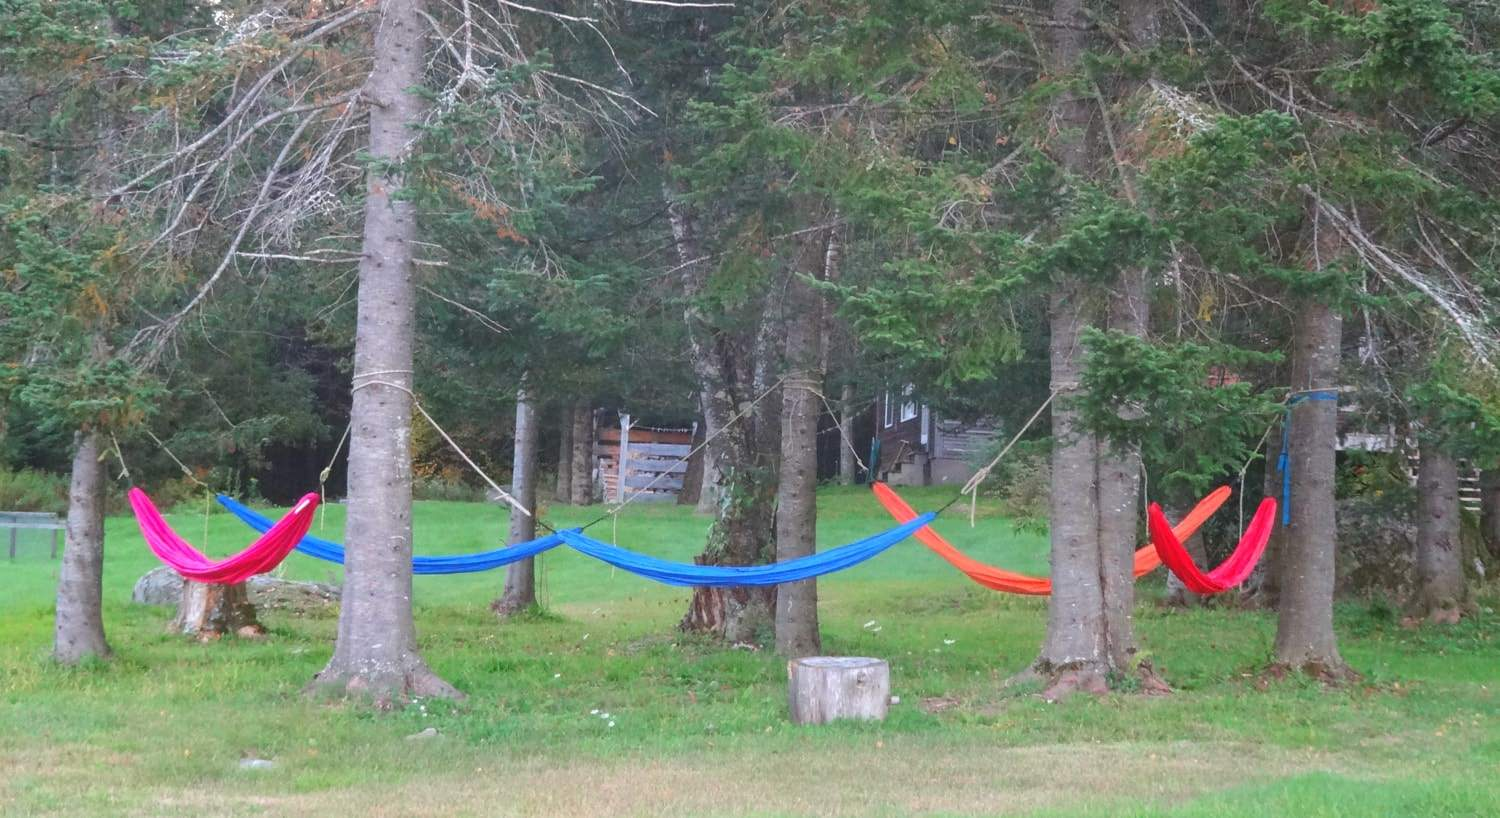 Colorful hammocks hanging from trees